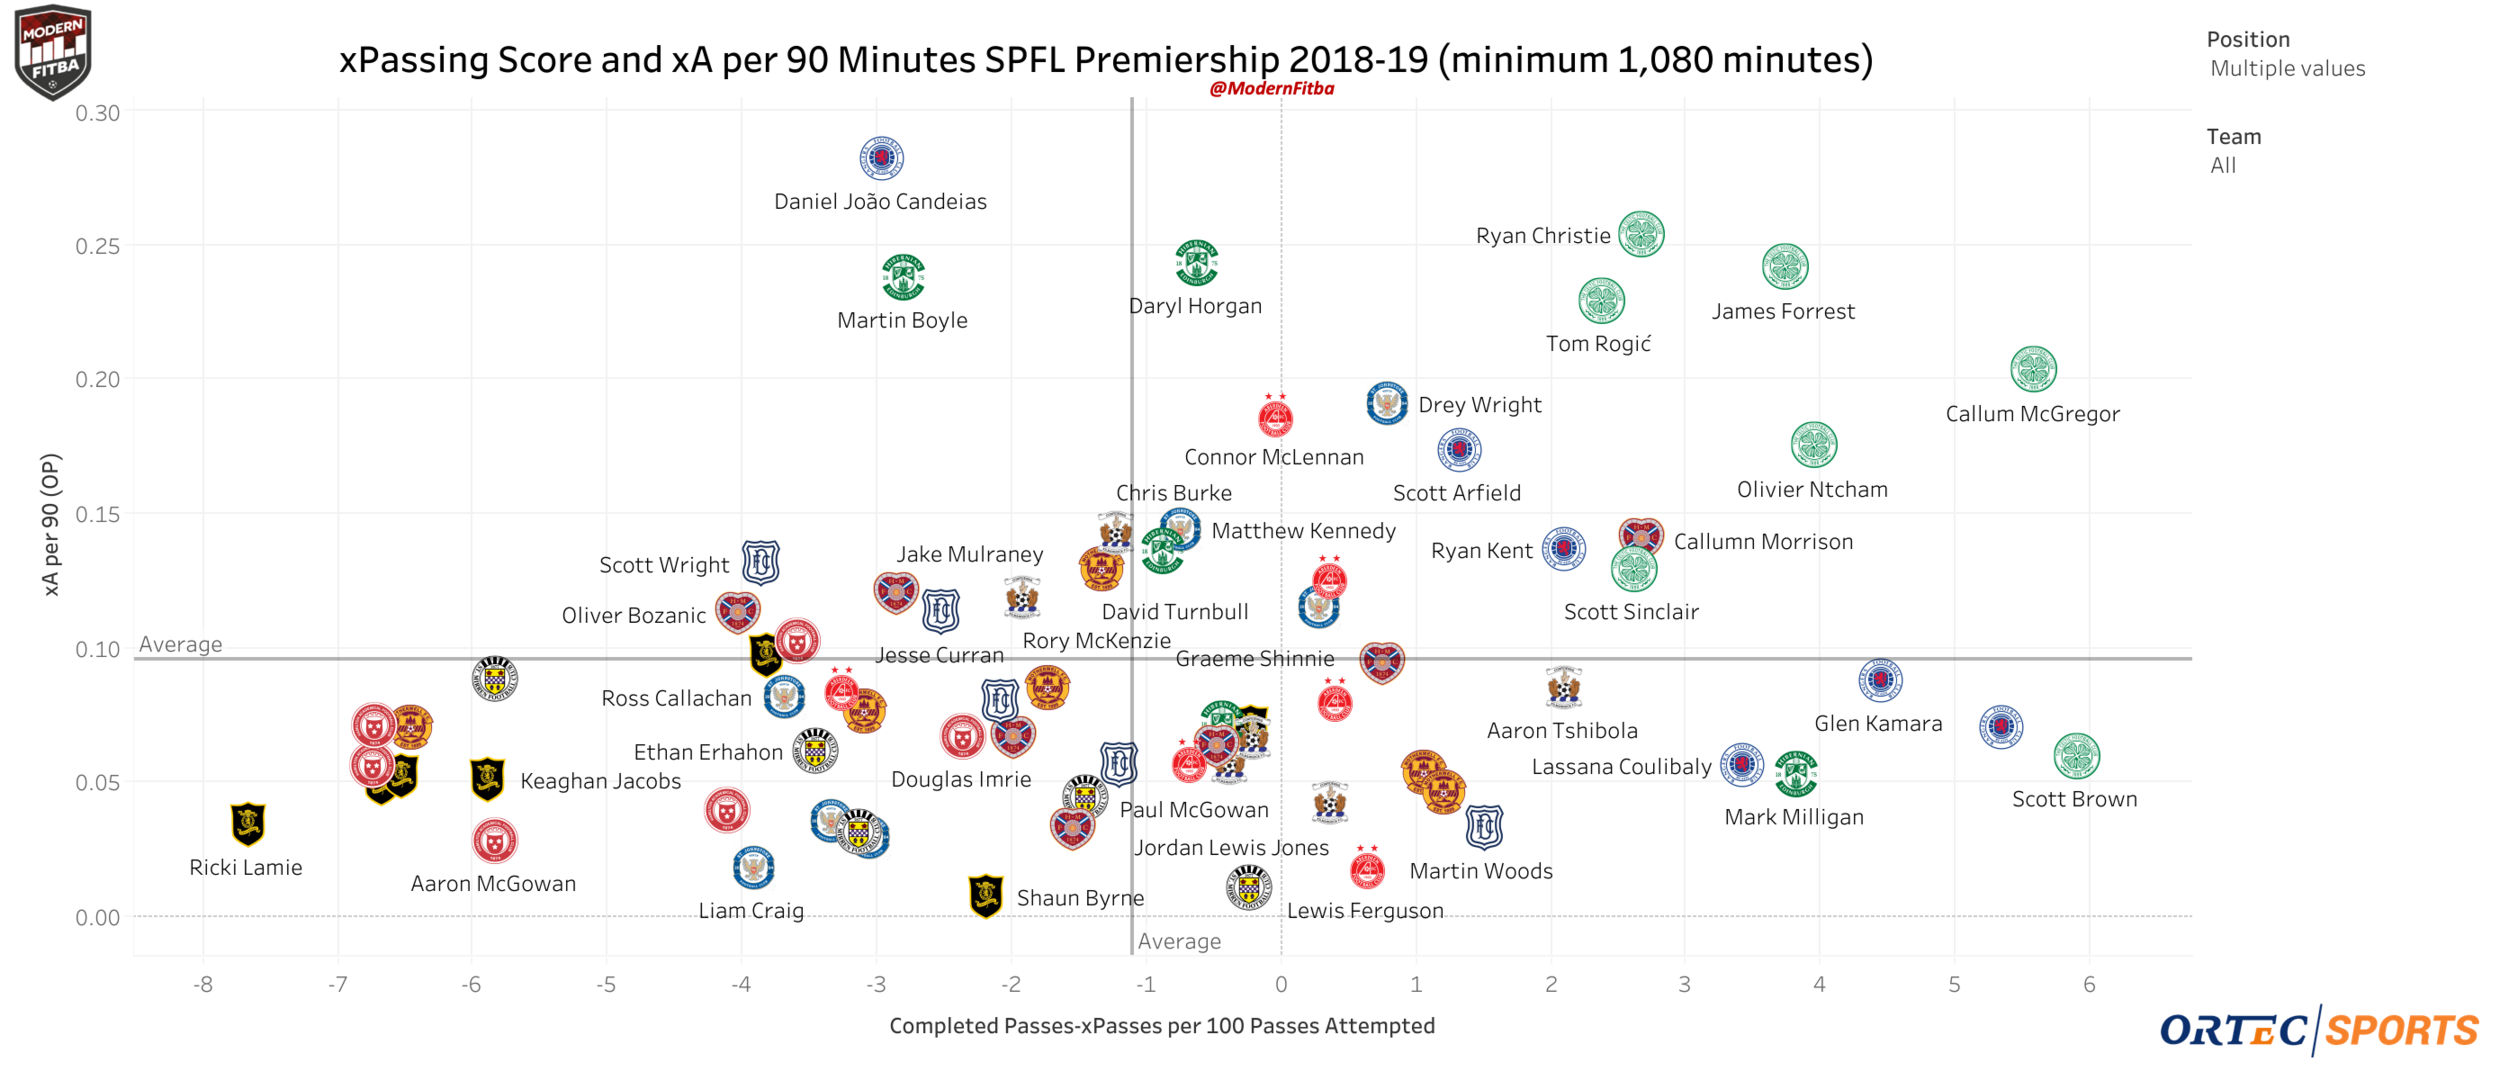 Pass Score (Completed Passes - xPasses Completed) per 100 passes attempted & xA per 90 (Open Play) for SPFL Premiership Midfielders. Interactive version can be found  here .